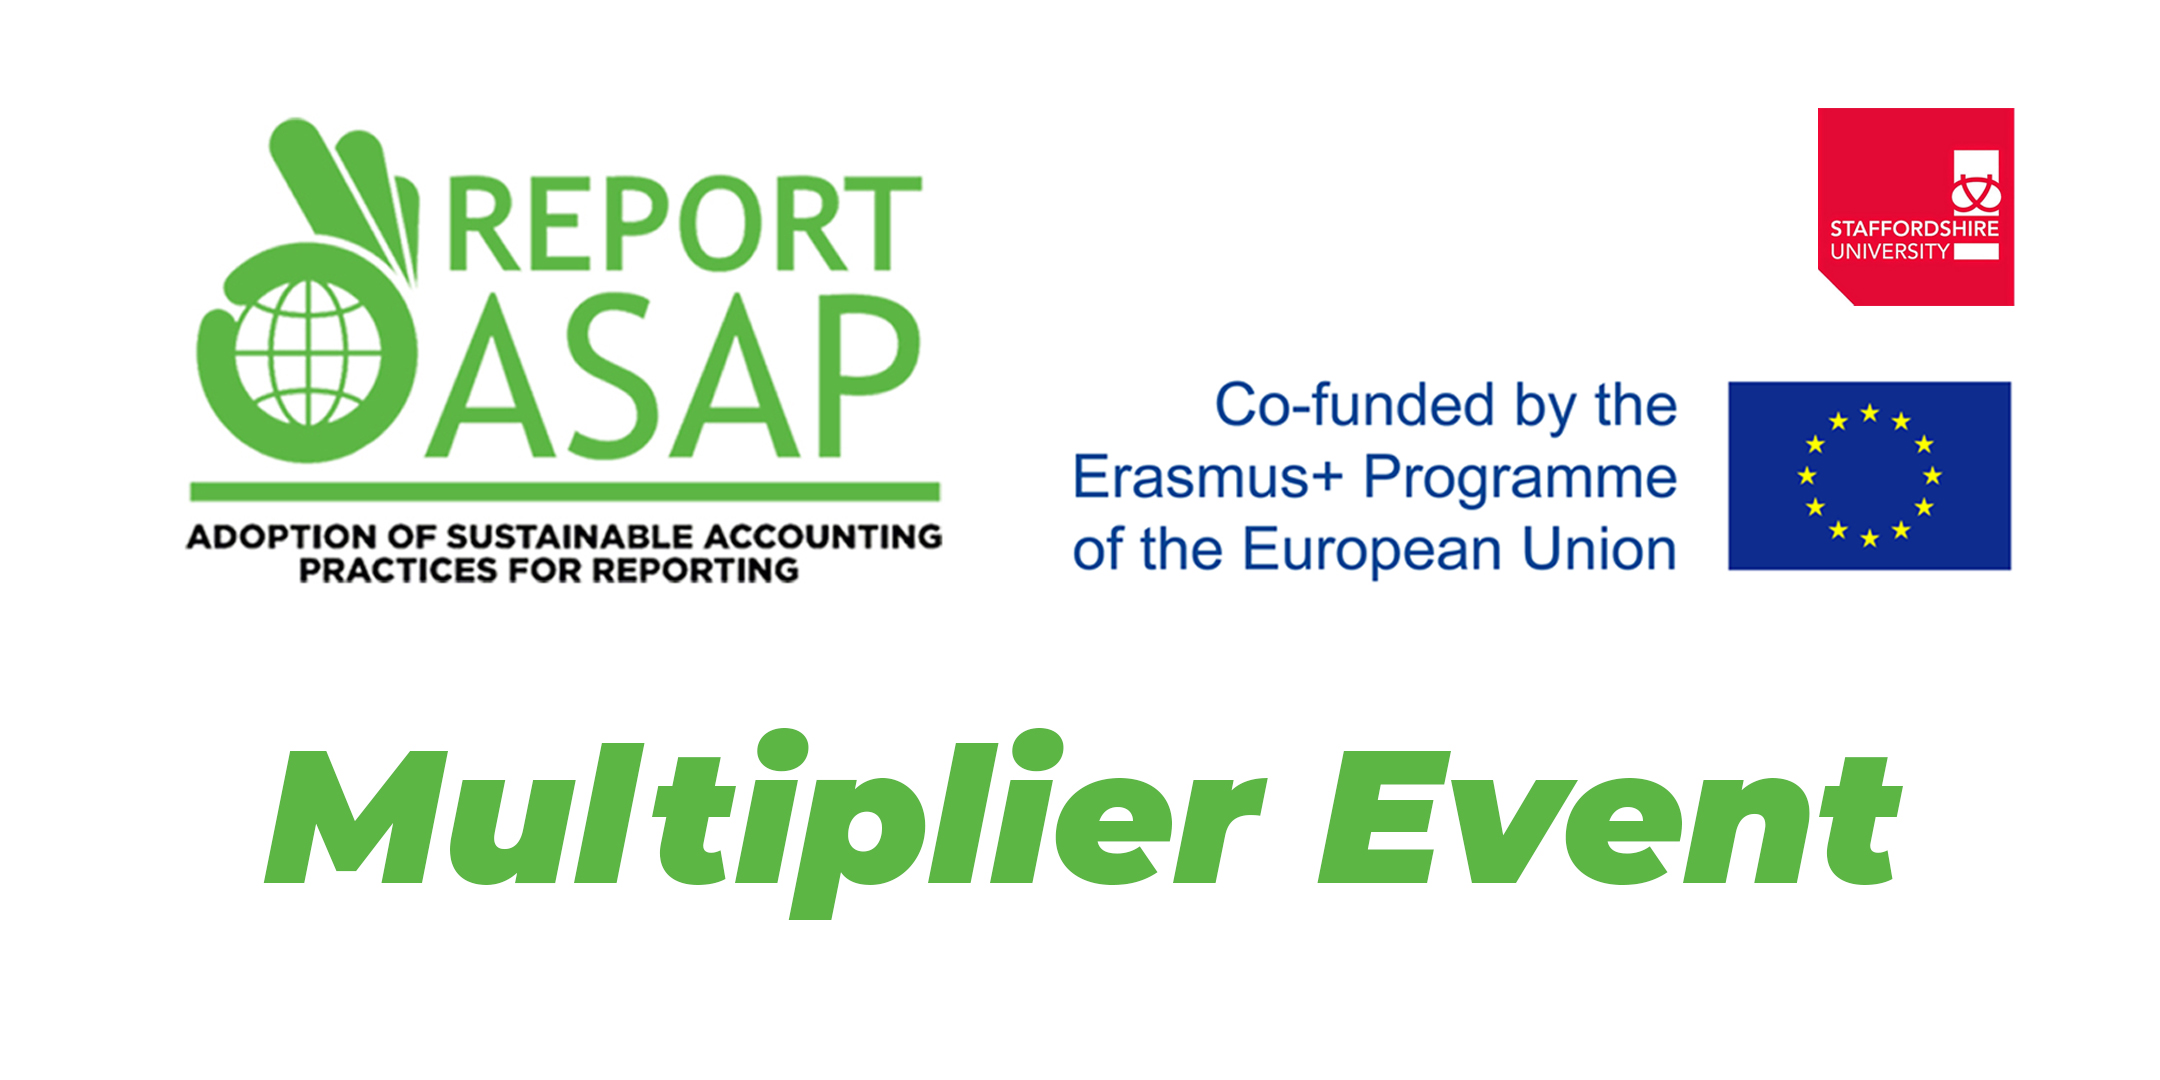 Multiplier event image featuring Report ASAP project logo, Staffordshire University logo and the Erasmus+ logo